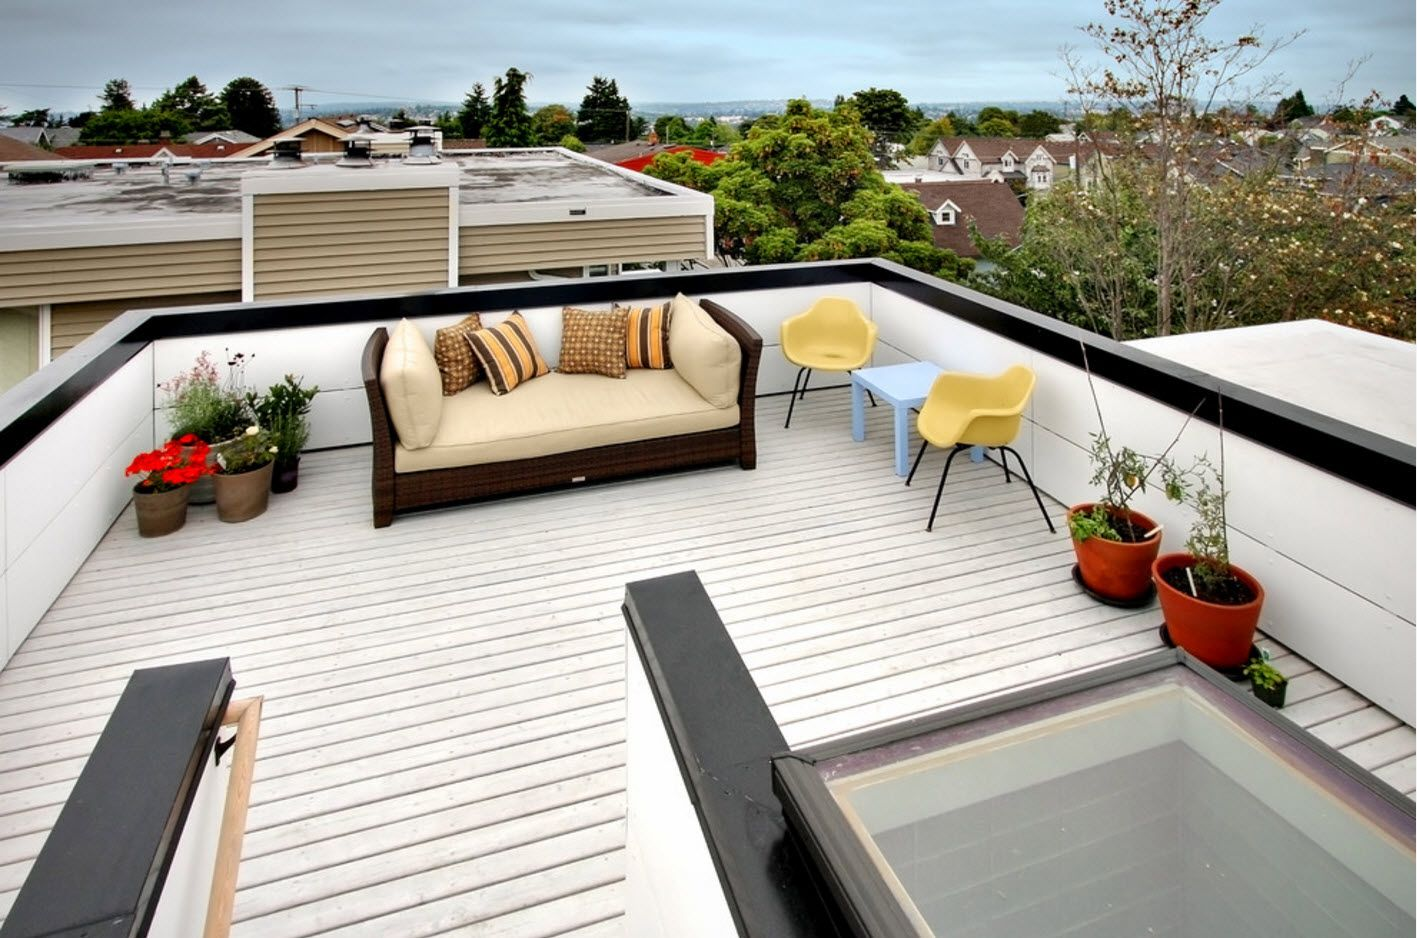 100+ Private House Roofs Beautiful Design Ideas. Mansard roof of the townhouse